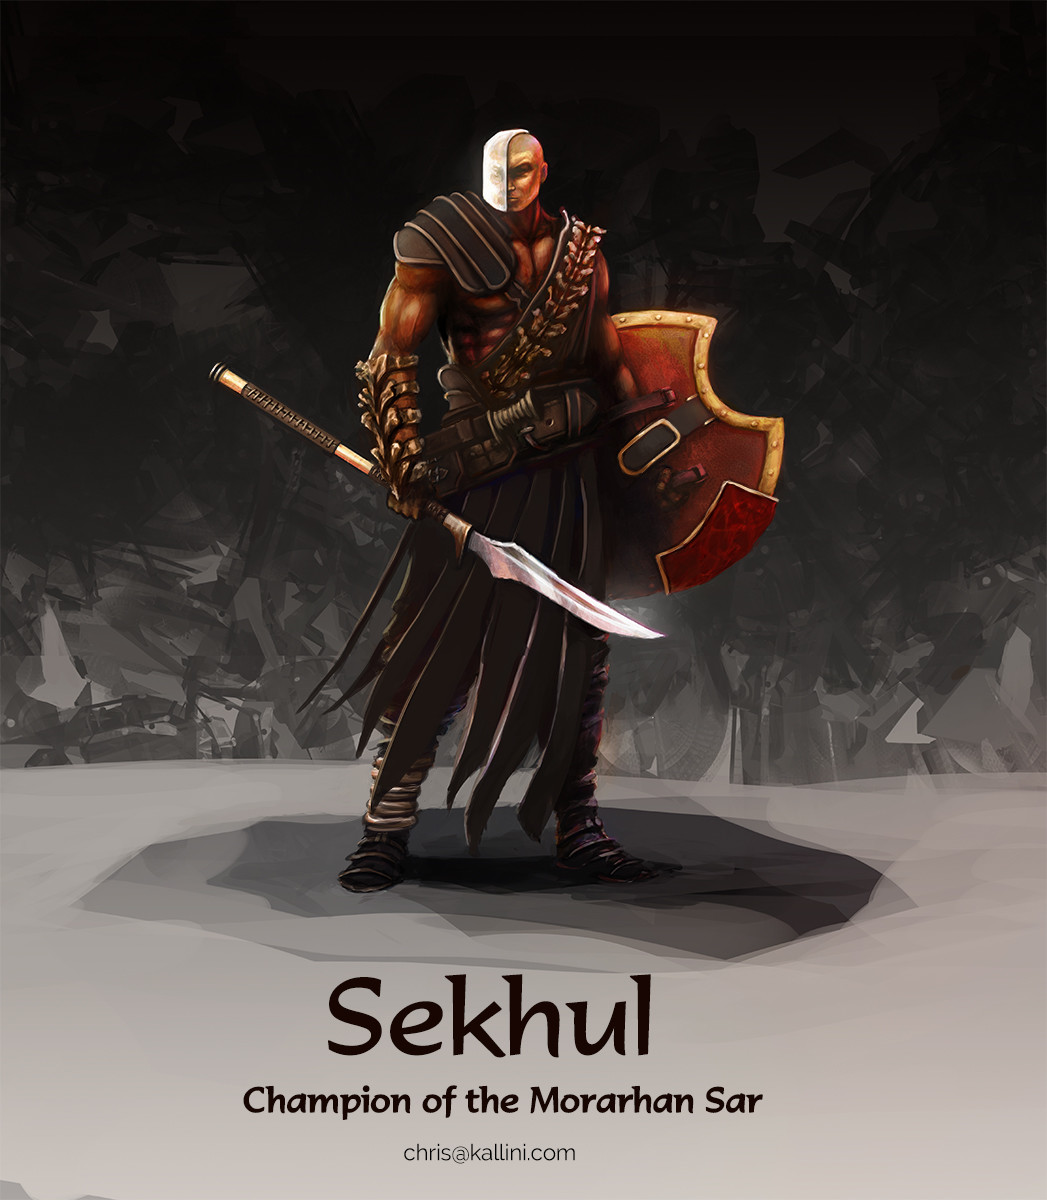 Sekhul, Champion of the Morarhan Sar